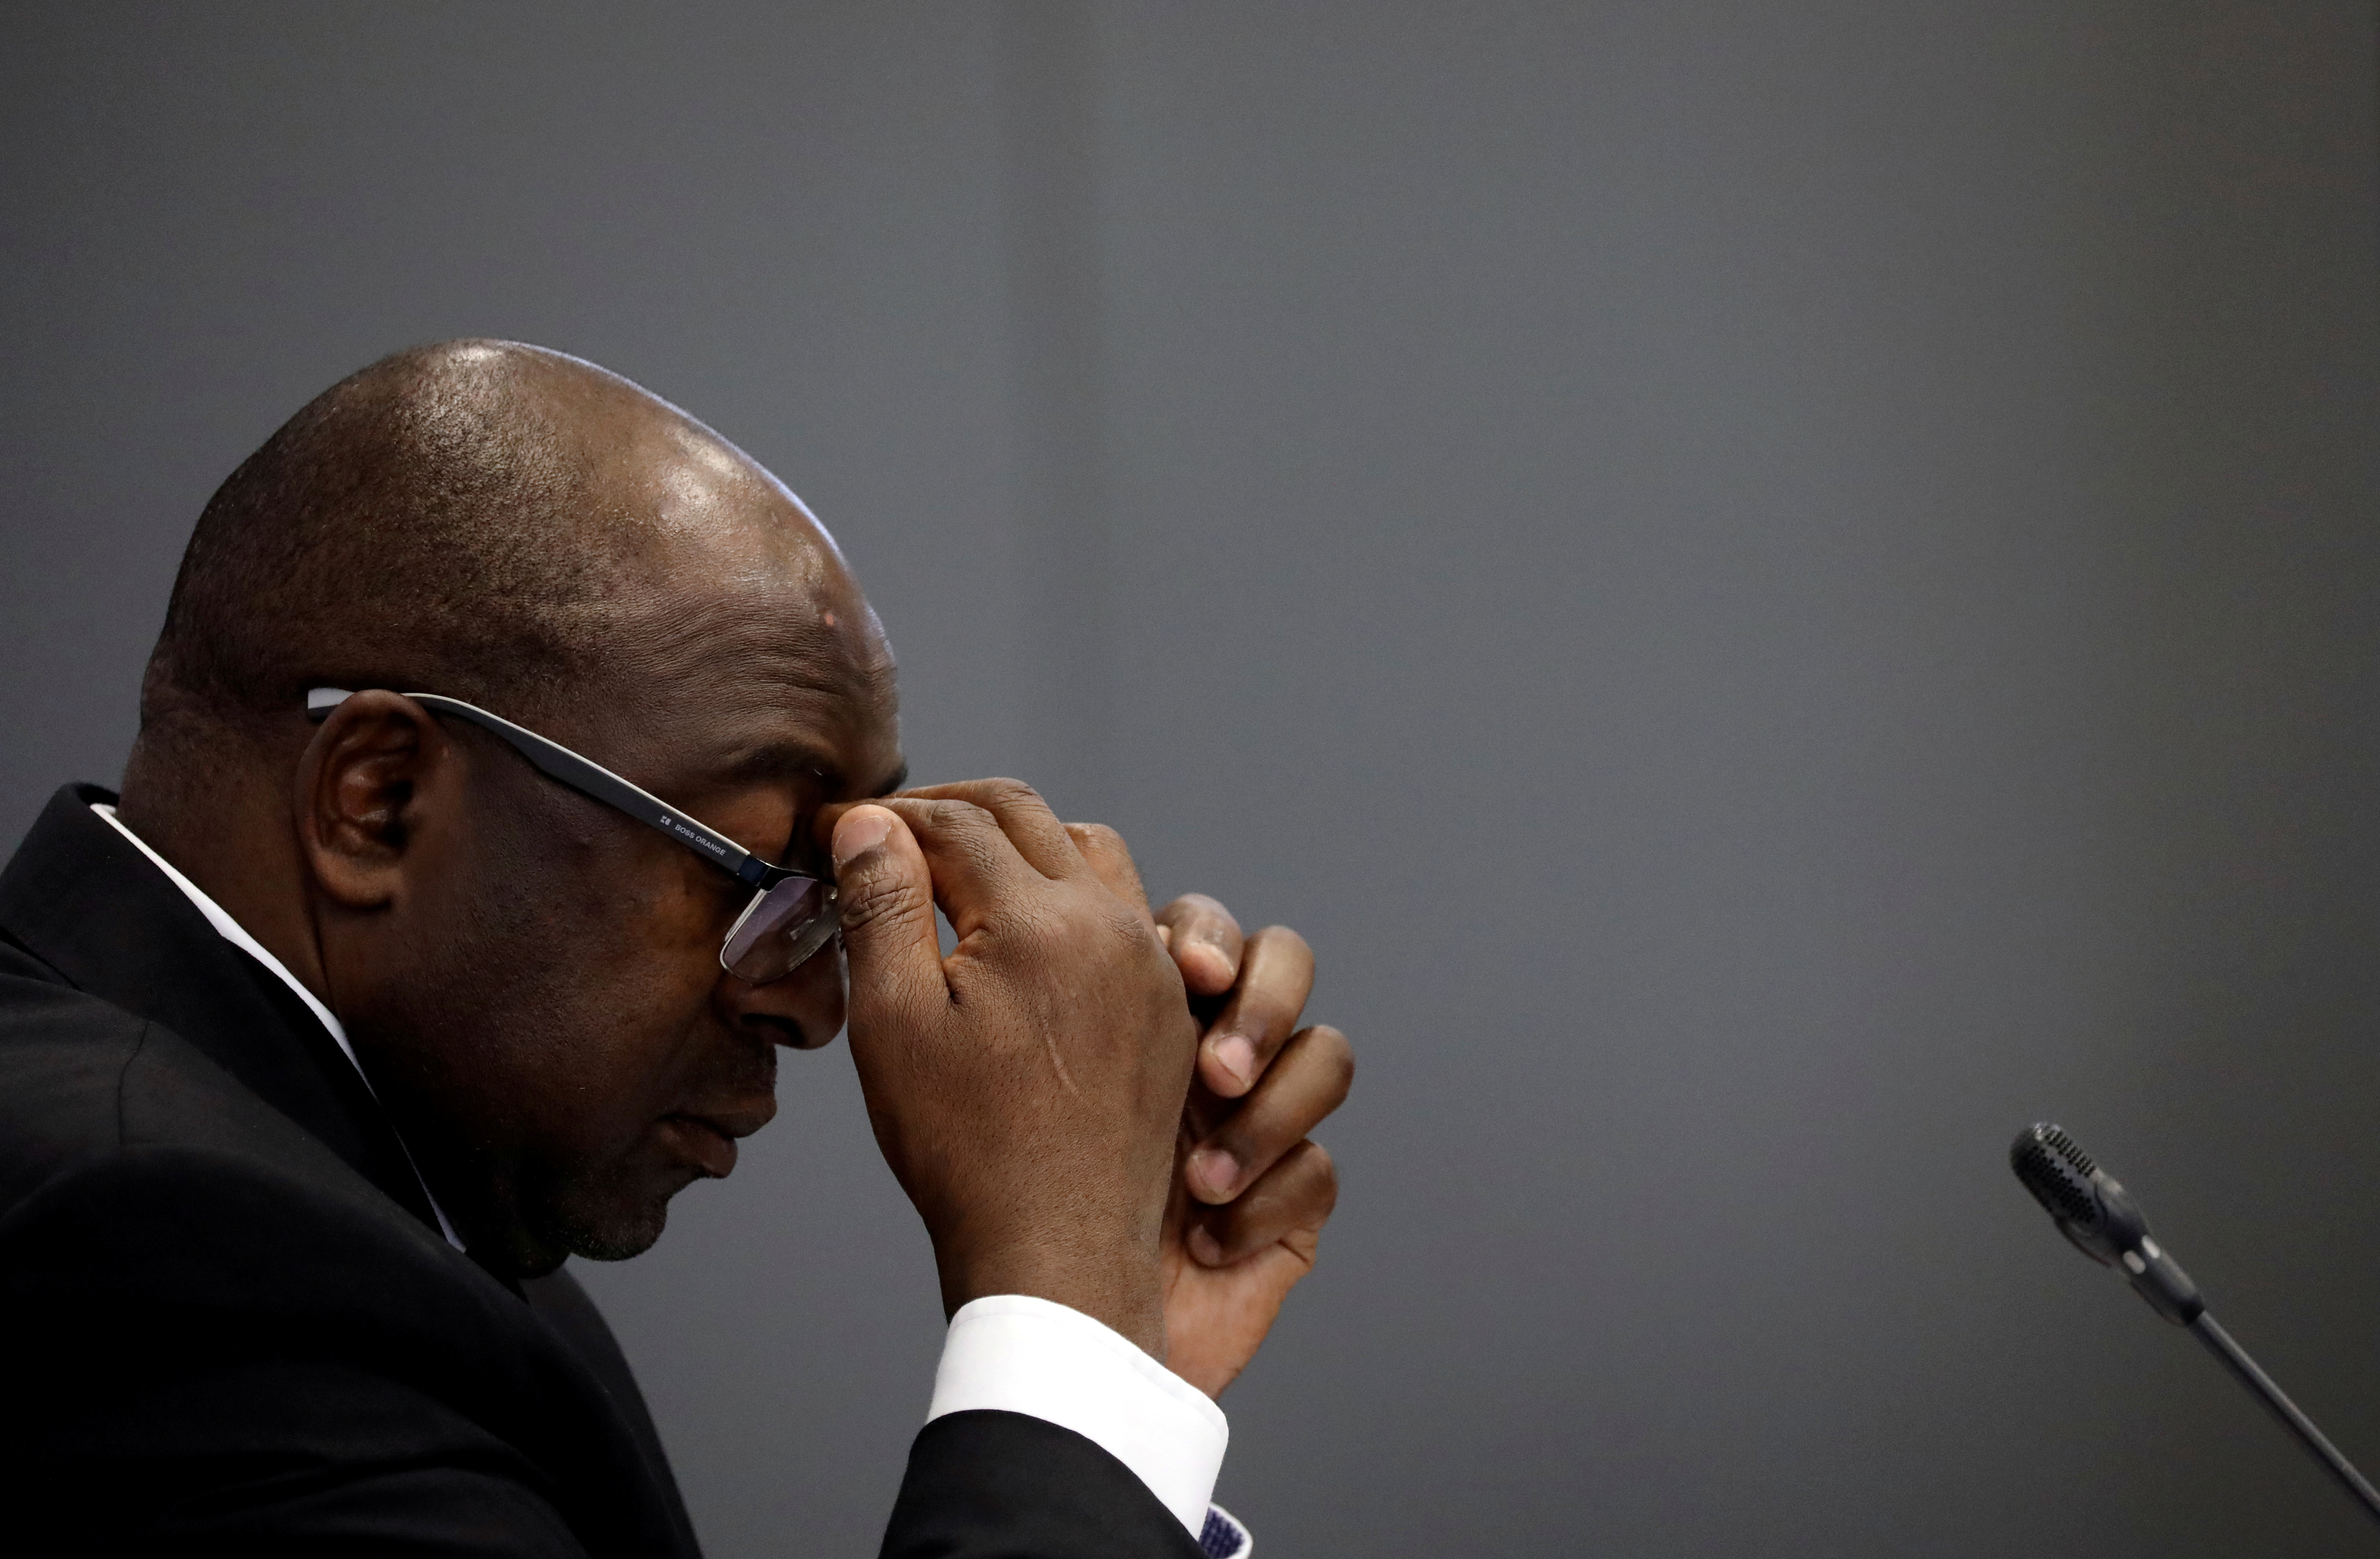 Nhlanhla Nene has officially resigned as a Member of Parliament